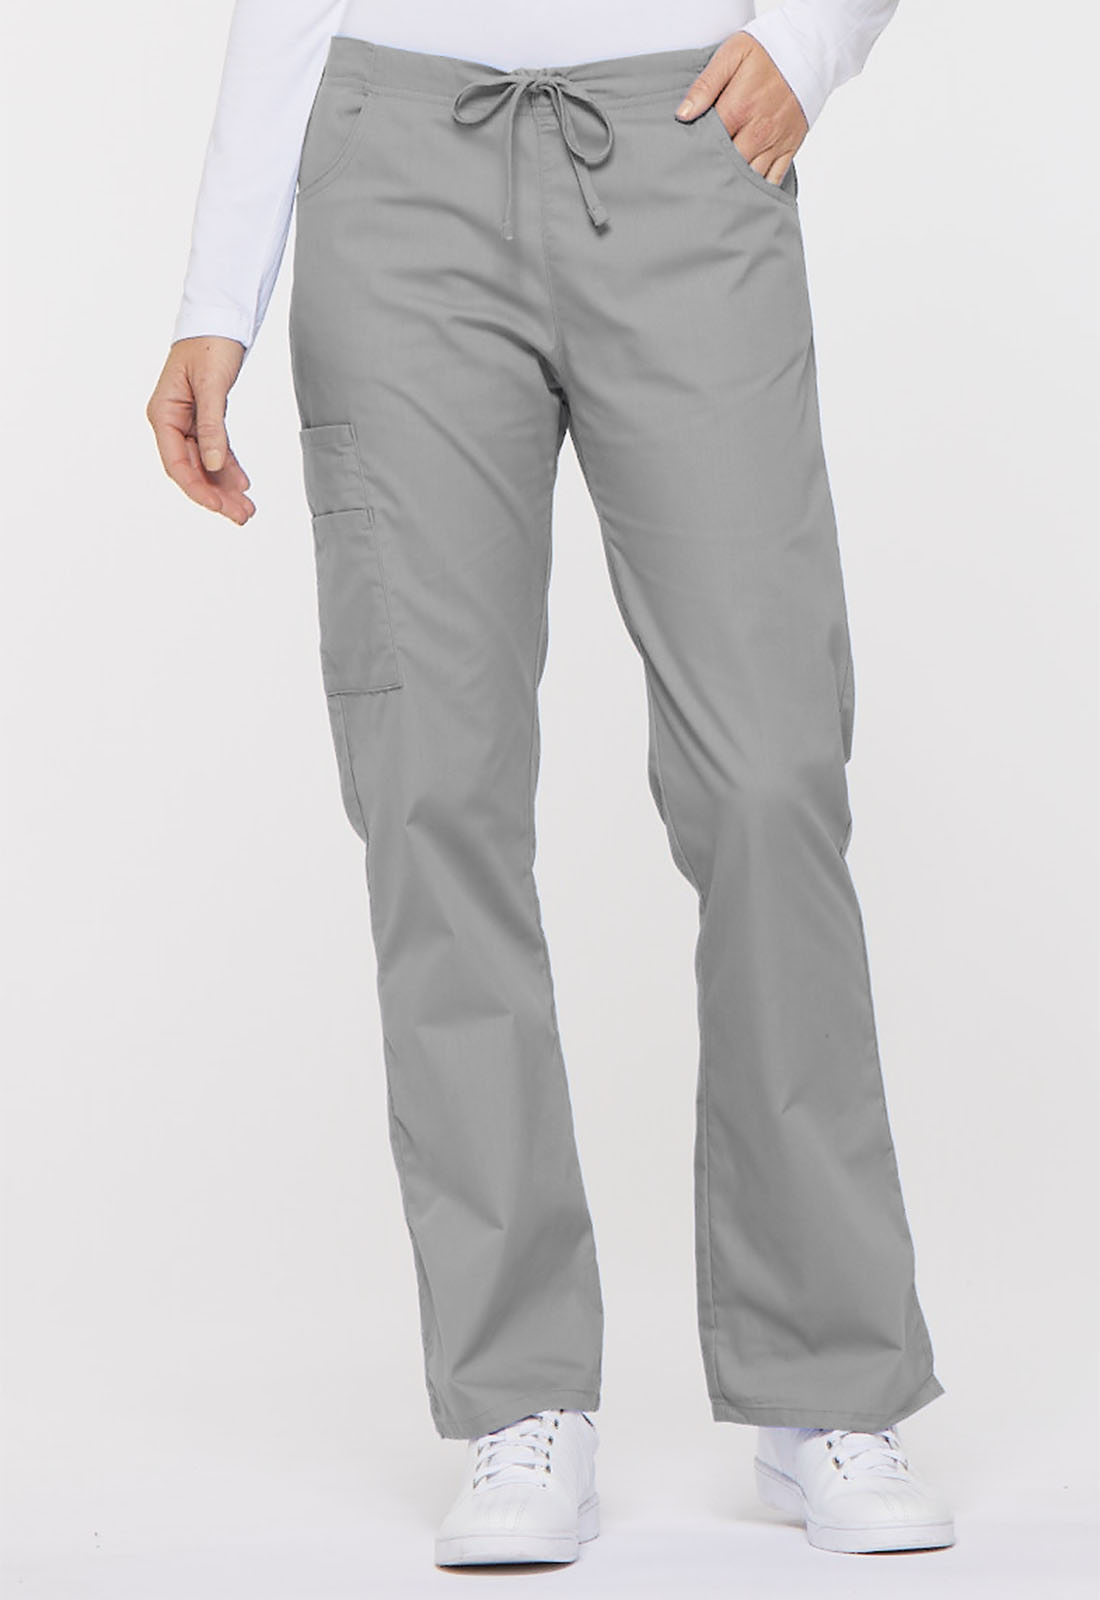 6d328bb84f9 Dickies EDS Signature Mid Rise Drawstring Cargo Pant in Grey from ...